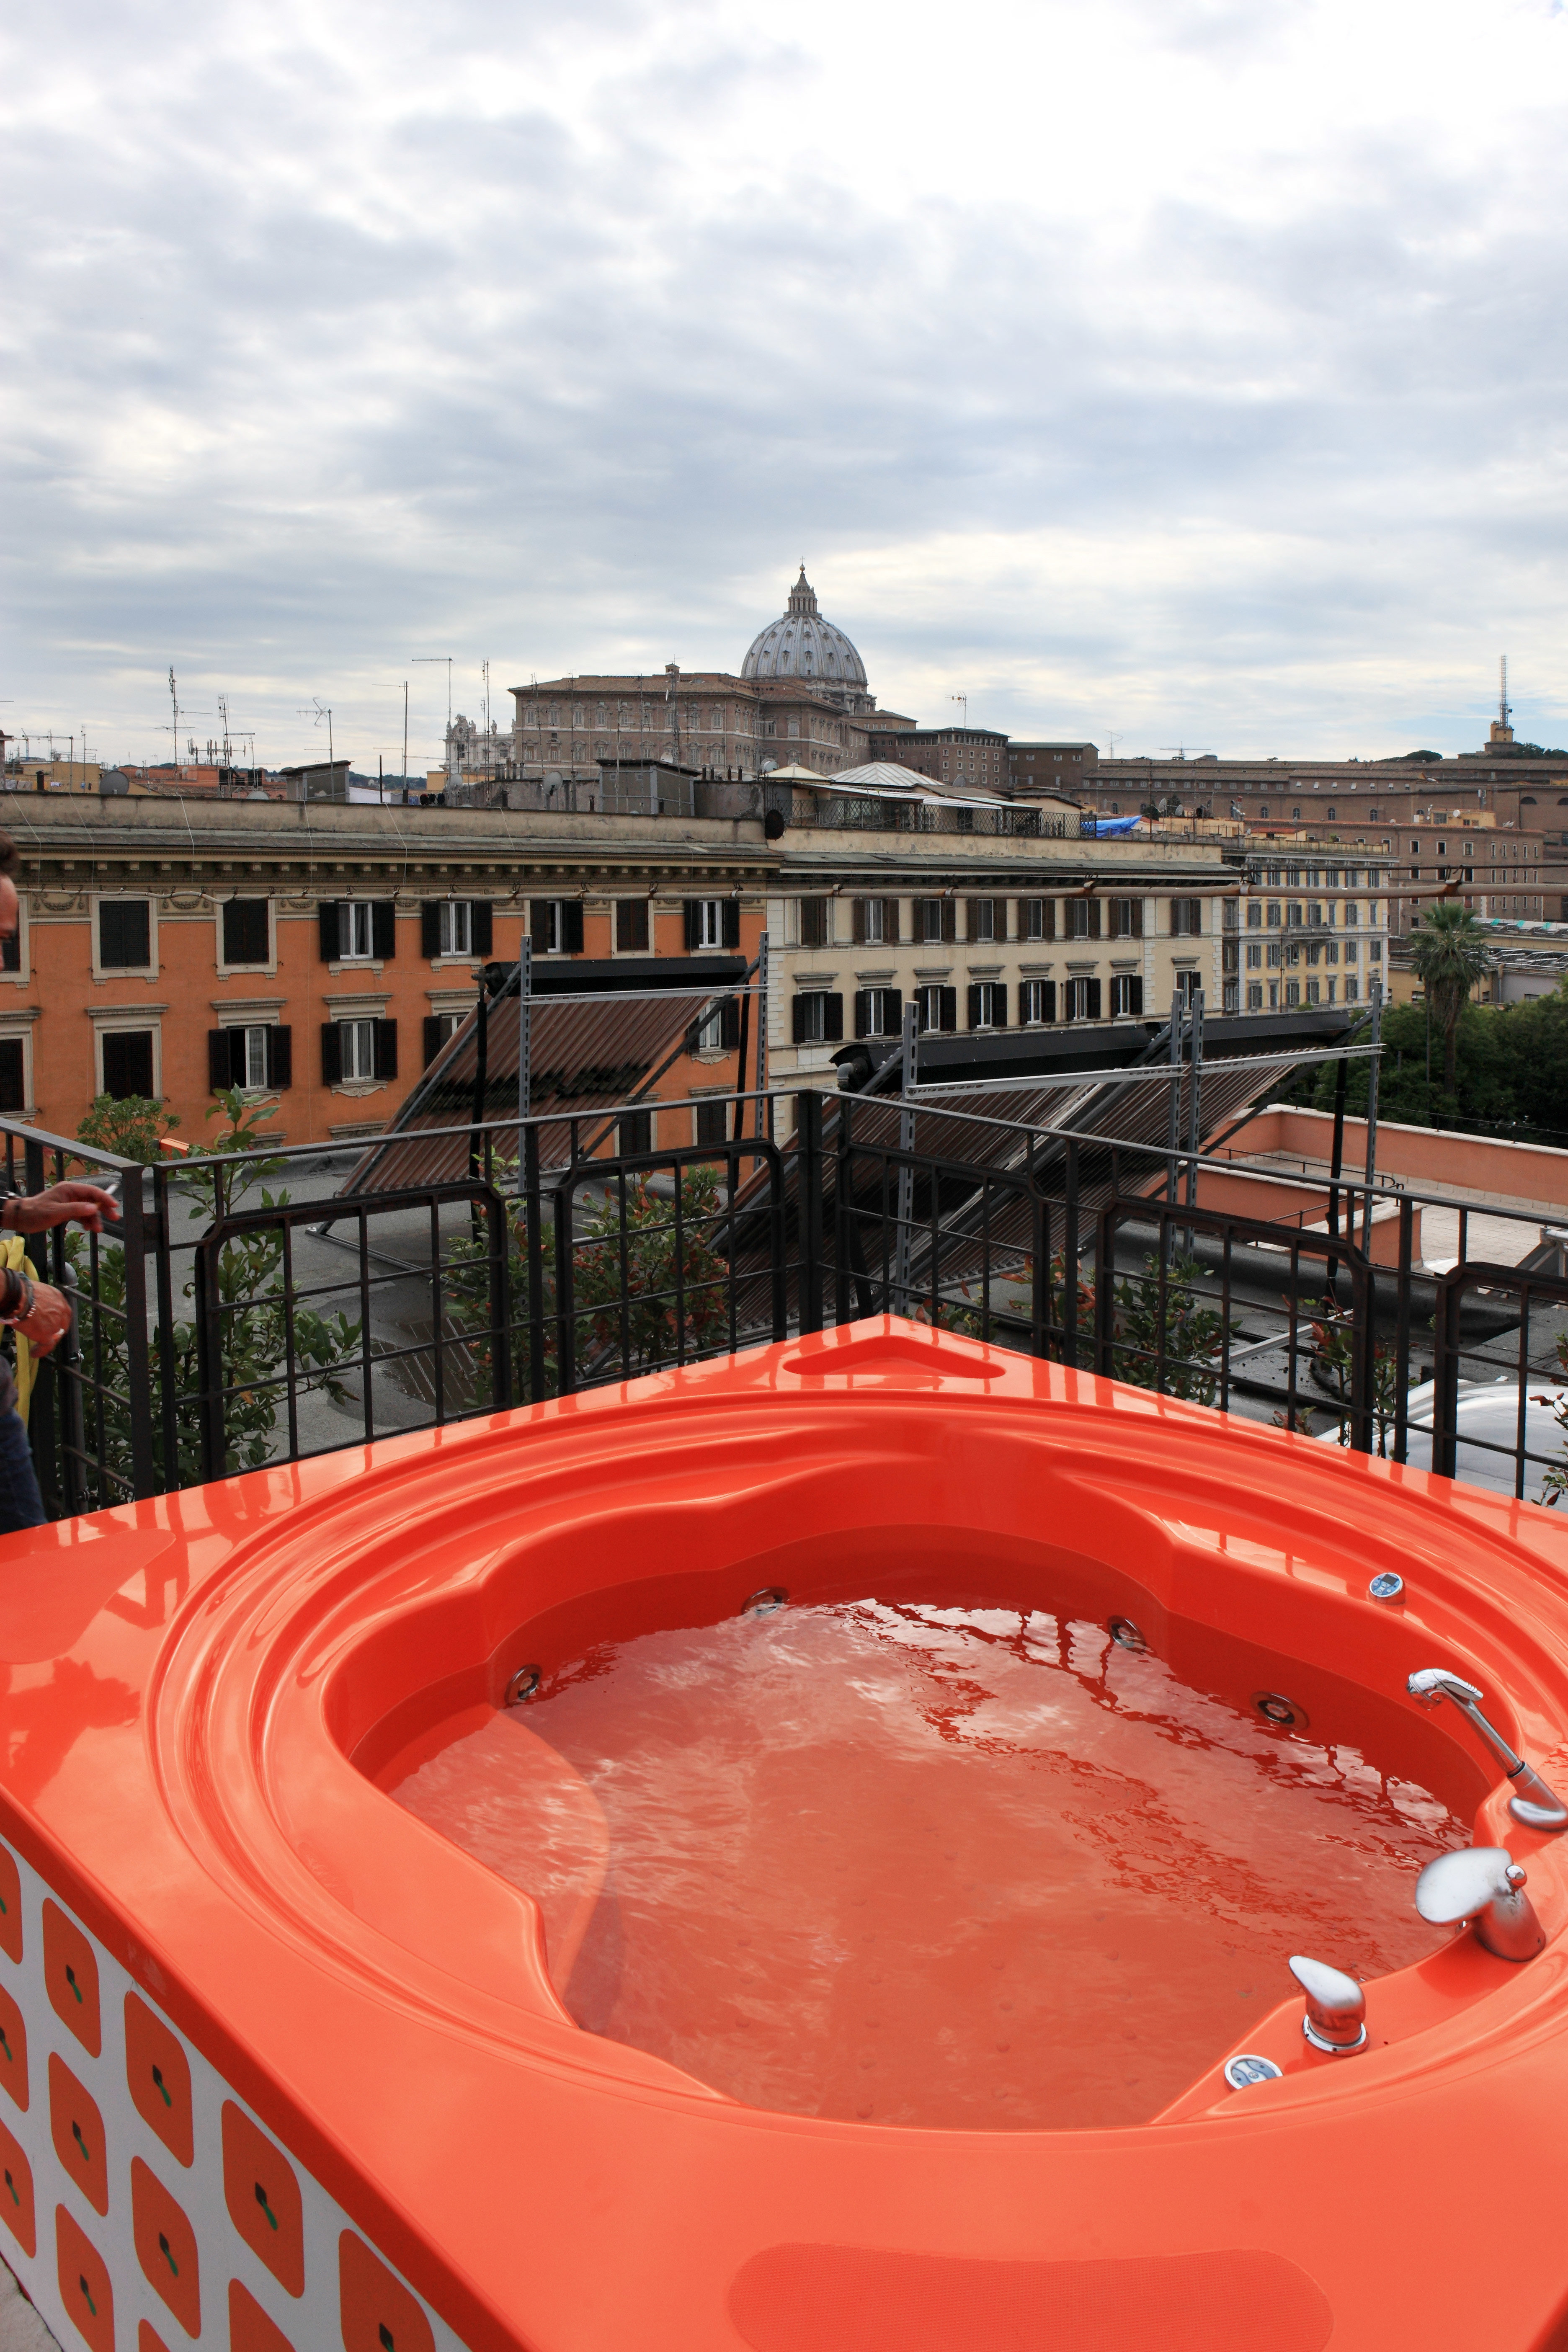 Boutique Budget City Hot tub Hot tub/Jacuzzi sky building red swimming pool sport venue orange